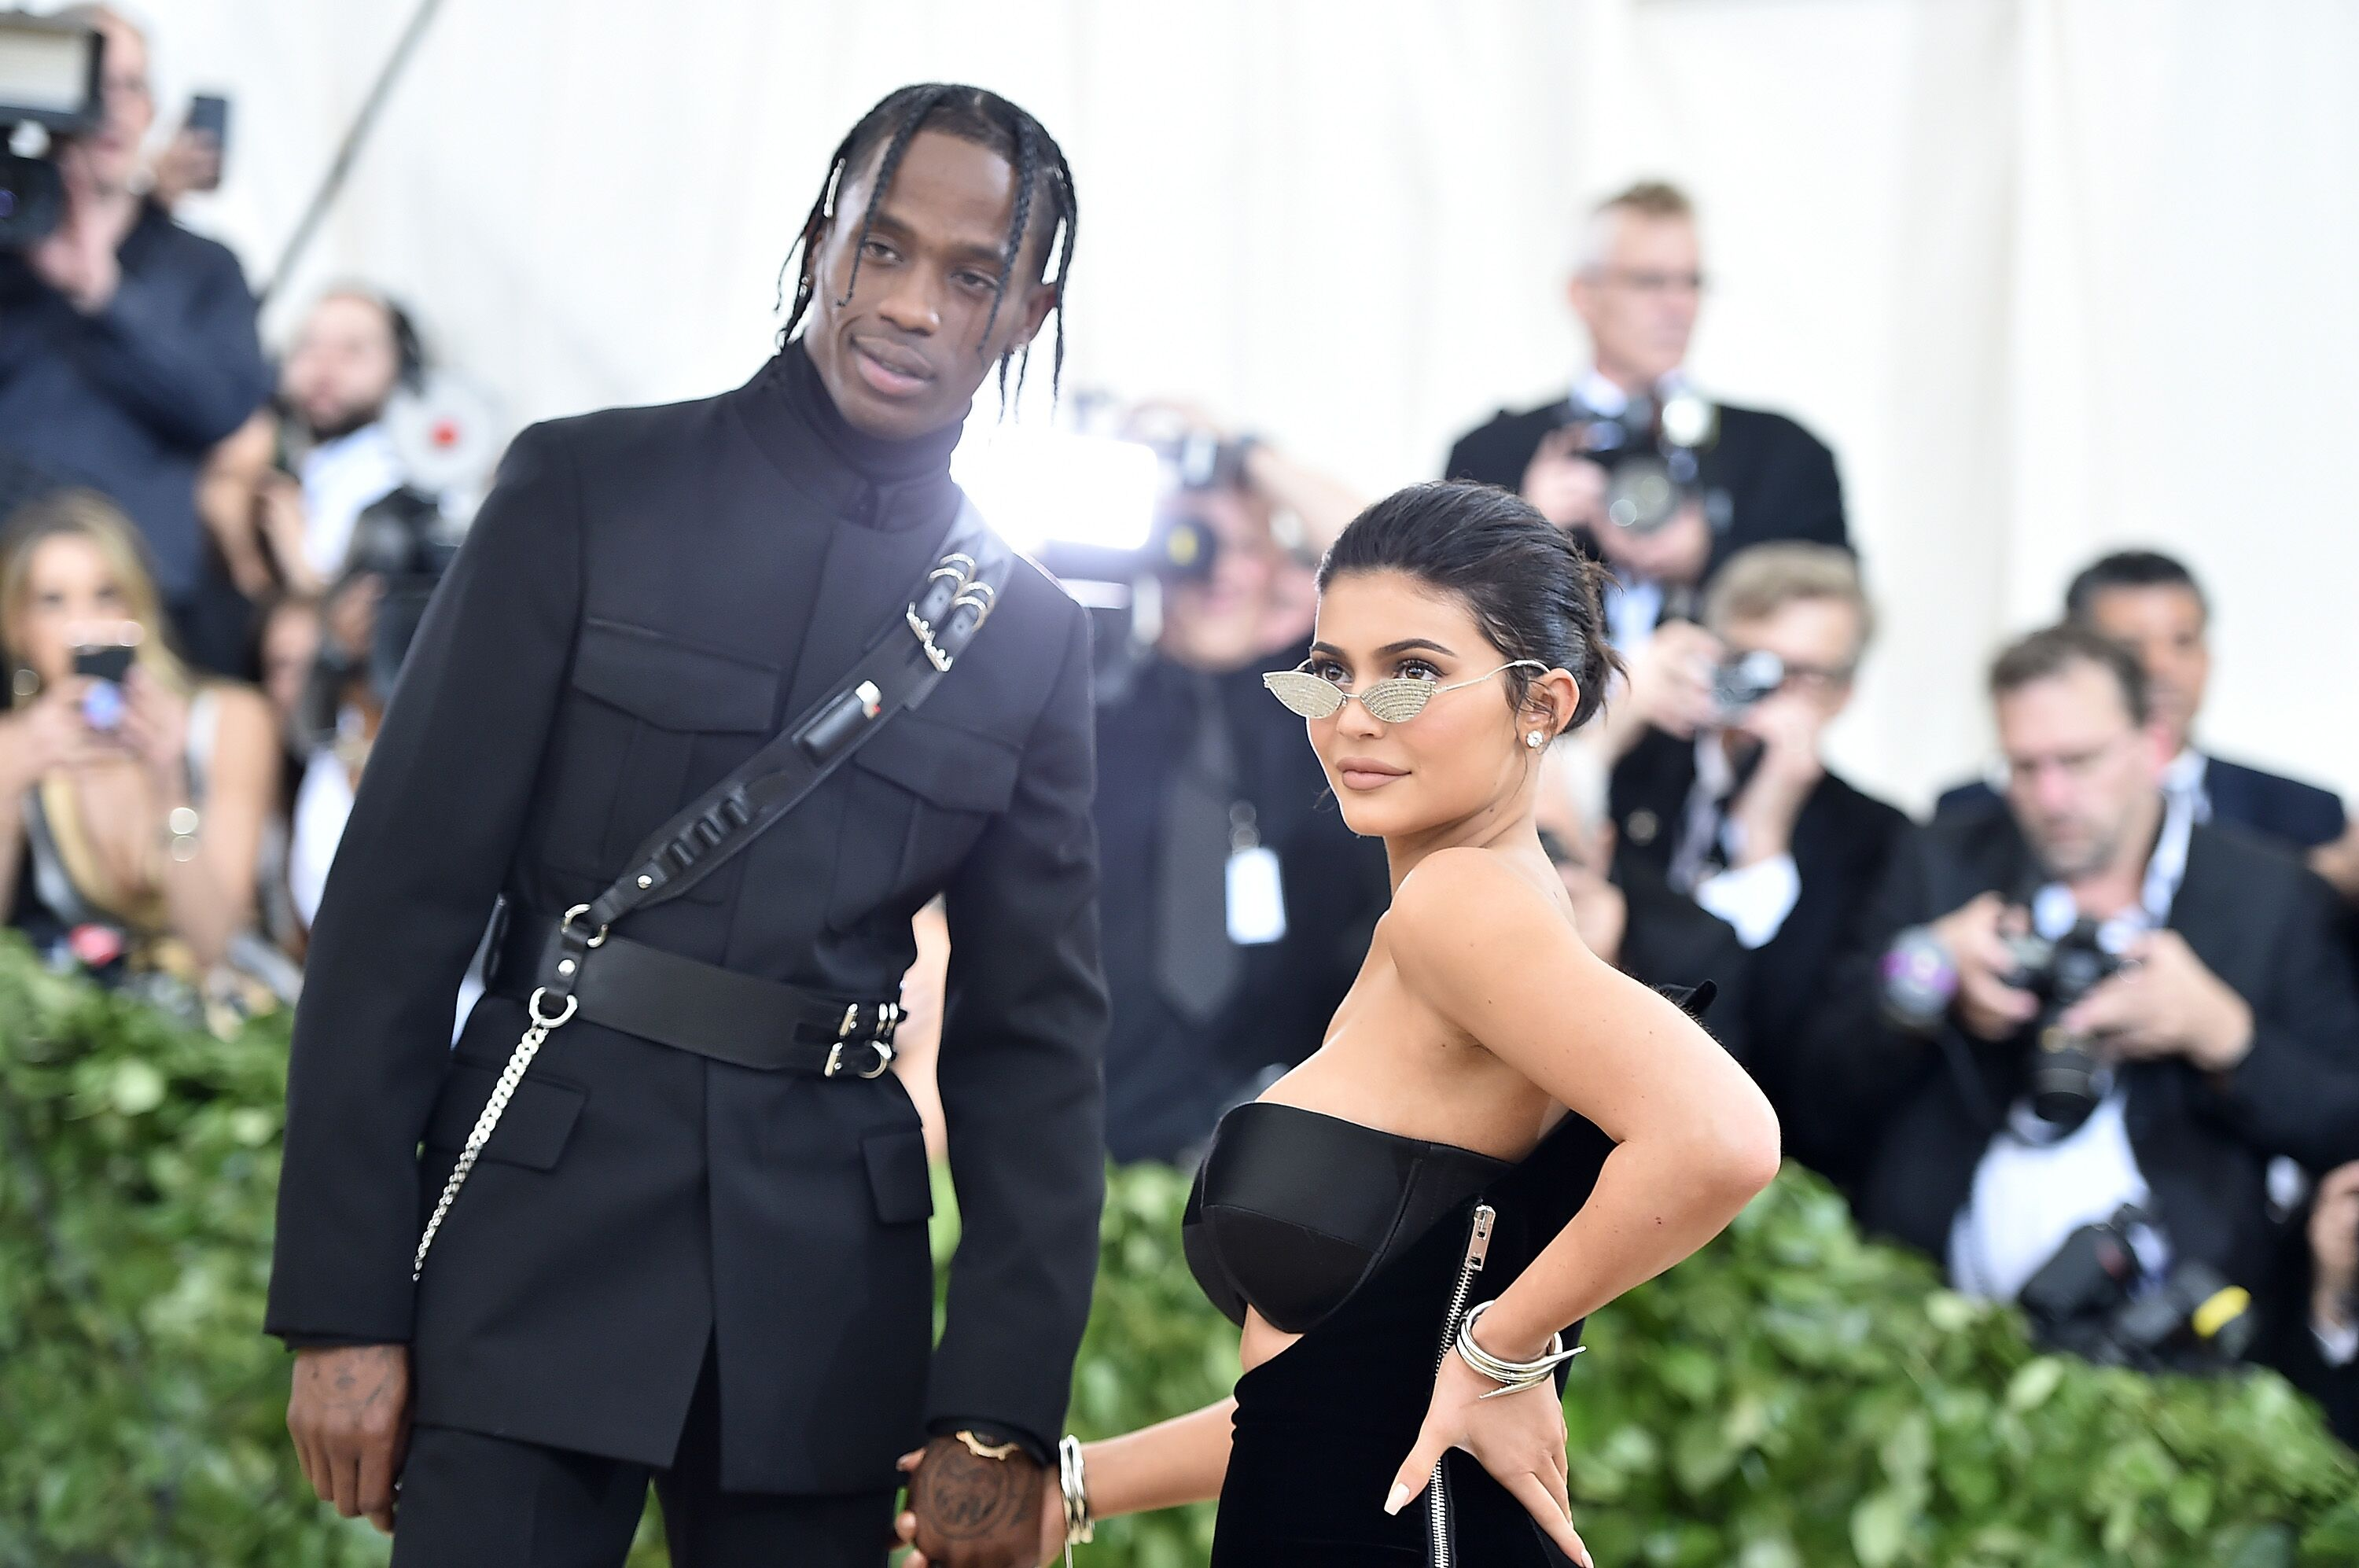 Kylie Jenner and Travis Scott at the MET Gala 2019 | Source: Getty Images/GlobalImagesUkraine